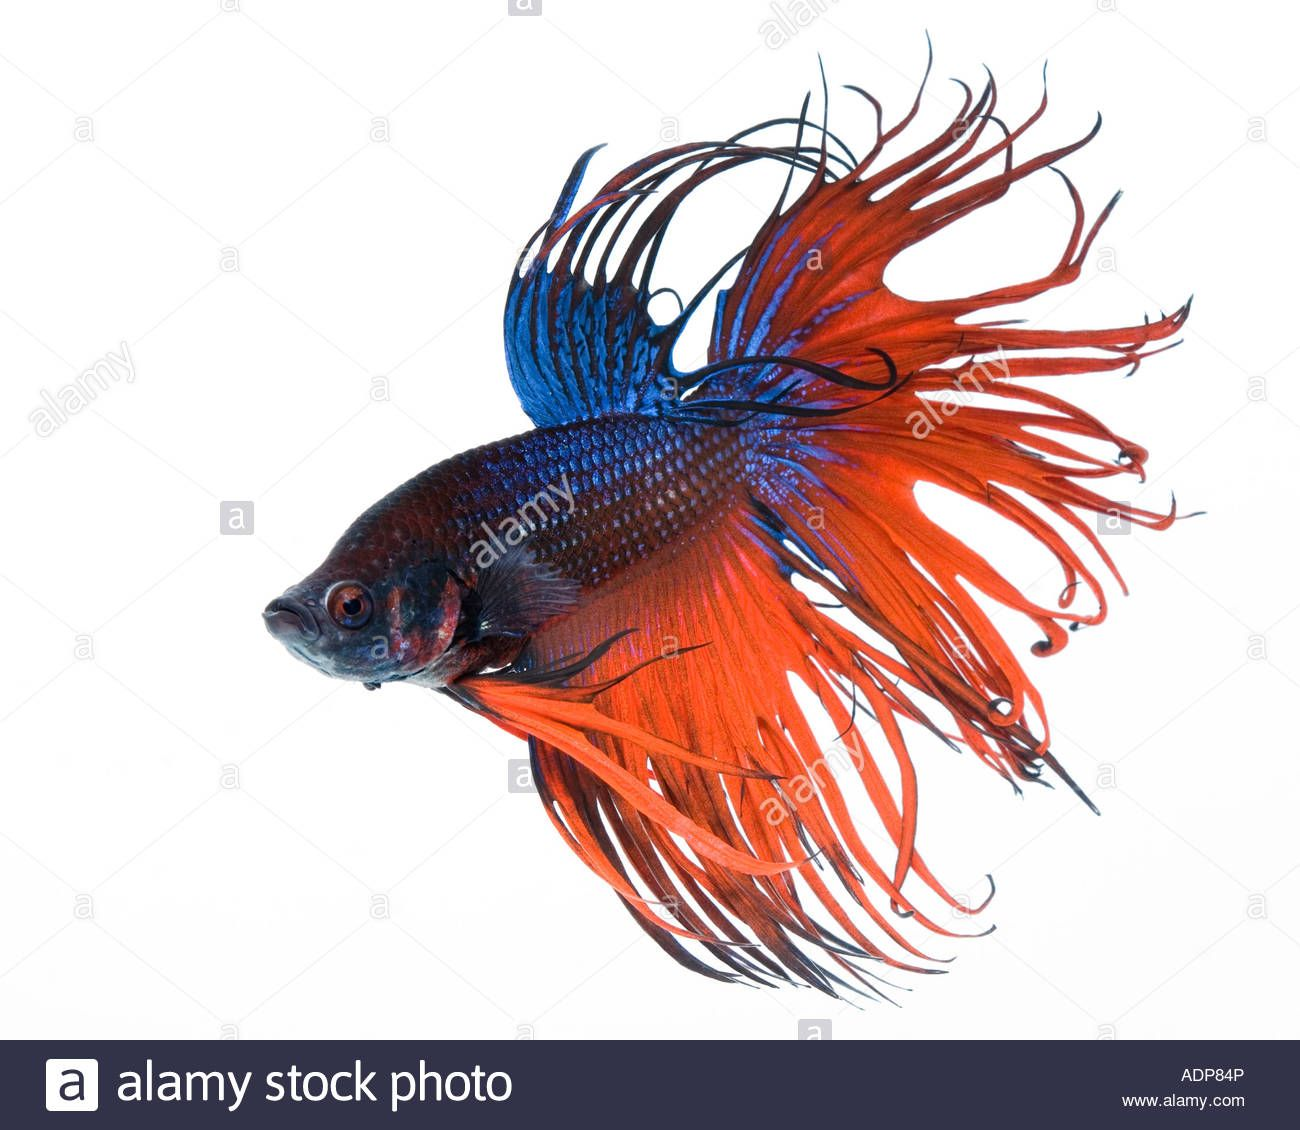 Red And Blue Crown Betta Fish With A White Background From The Blue Crown White Background Betta